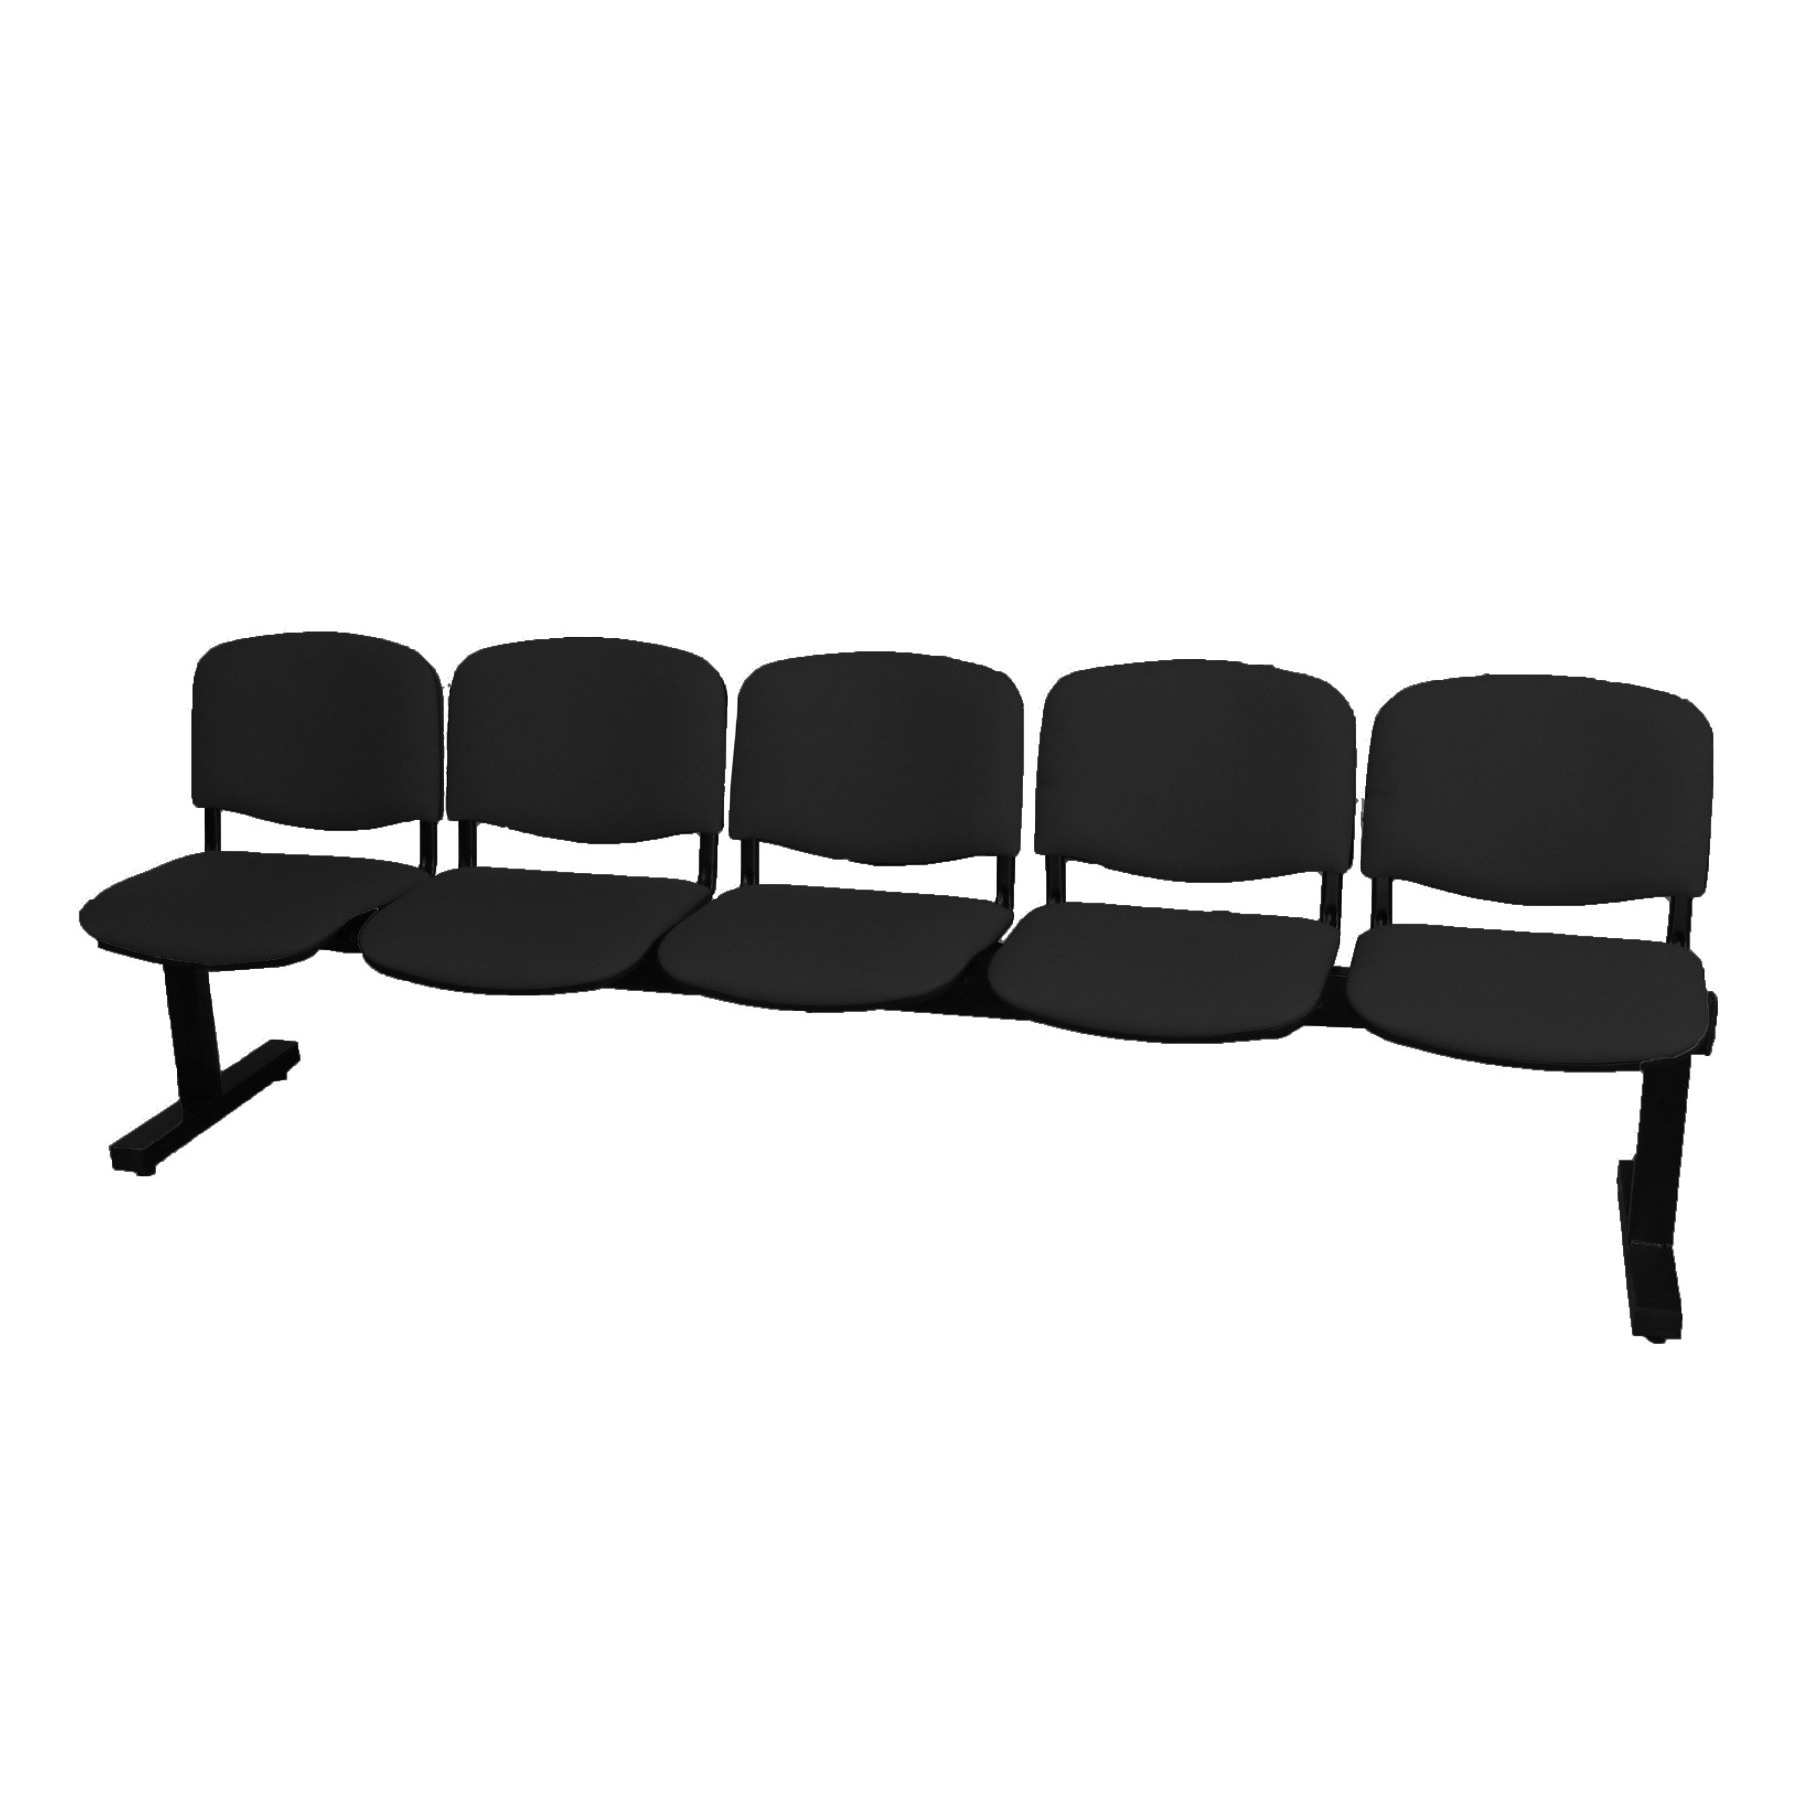 Bench Waiting Five Seater And Iron's Structure In Black Color Up Seat And Backstop Upholstered In Tissue ARAN Col